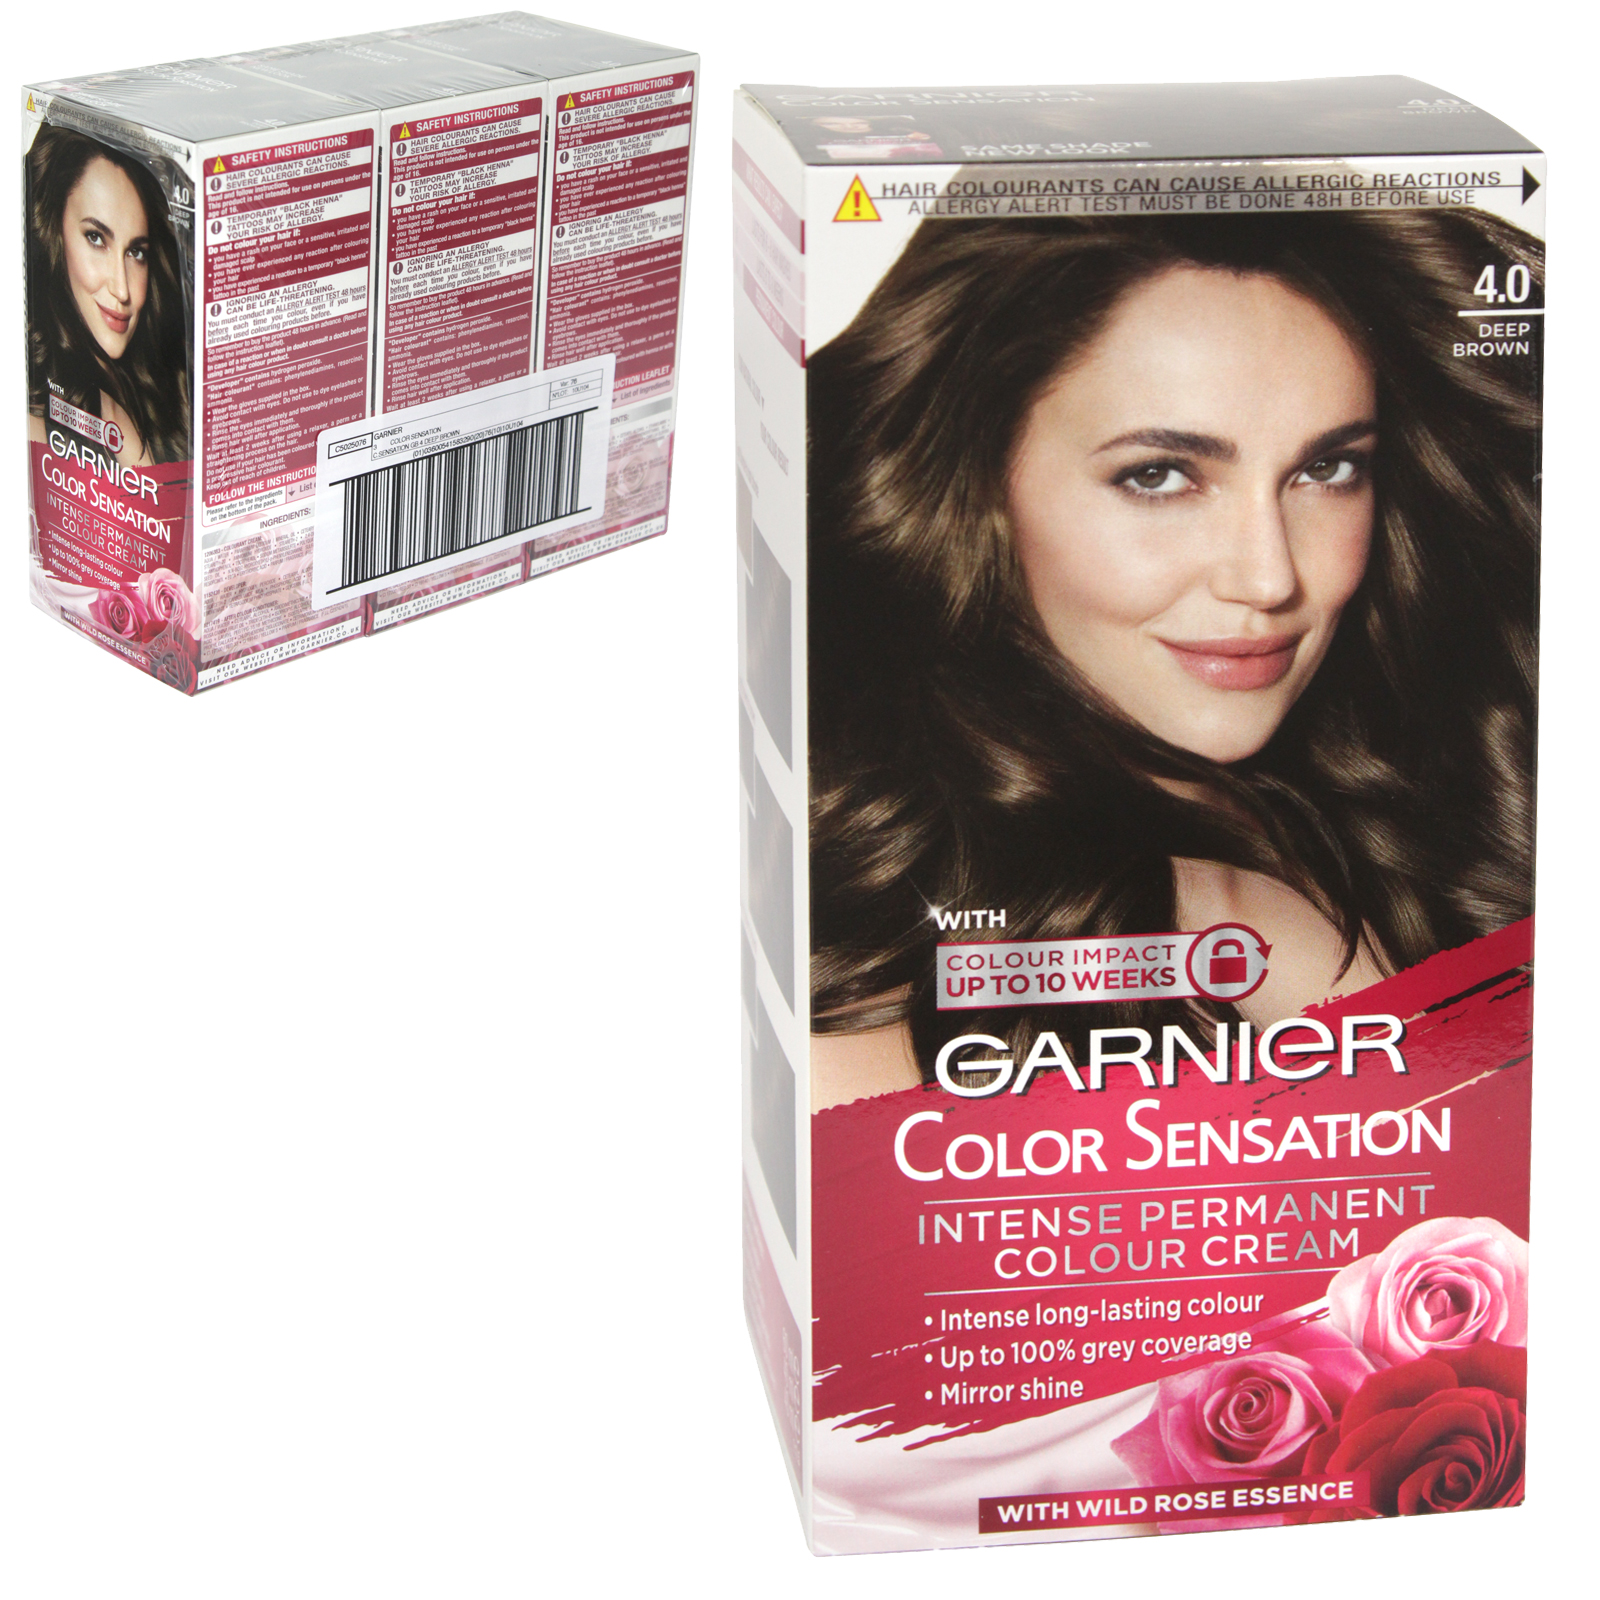 GARNIER HAIR COLOUR - DEEP BROWN 4.0 - X3